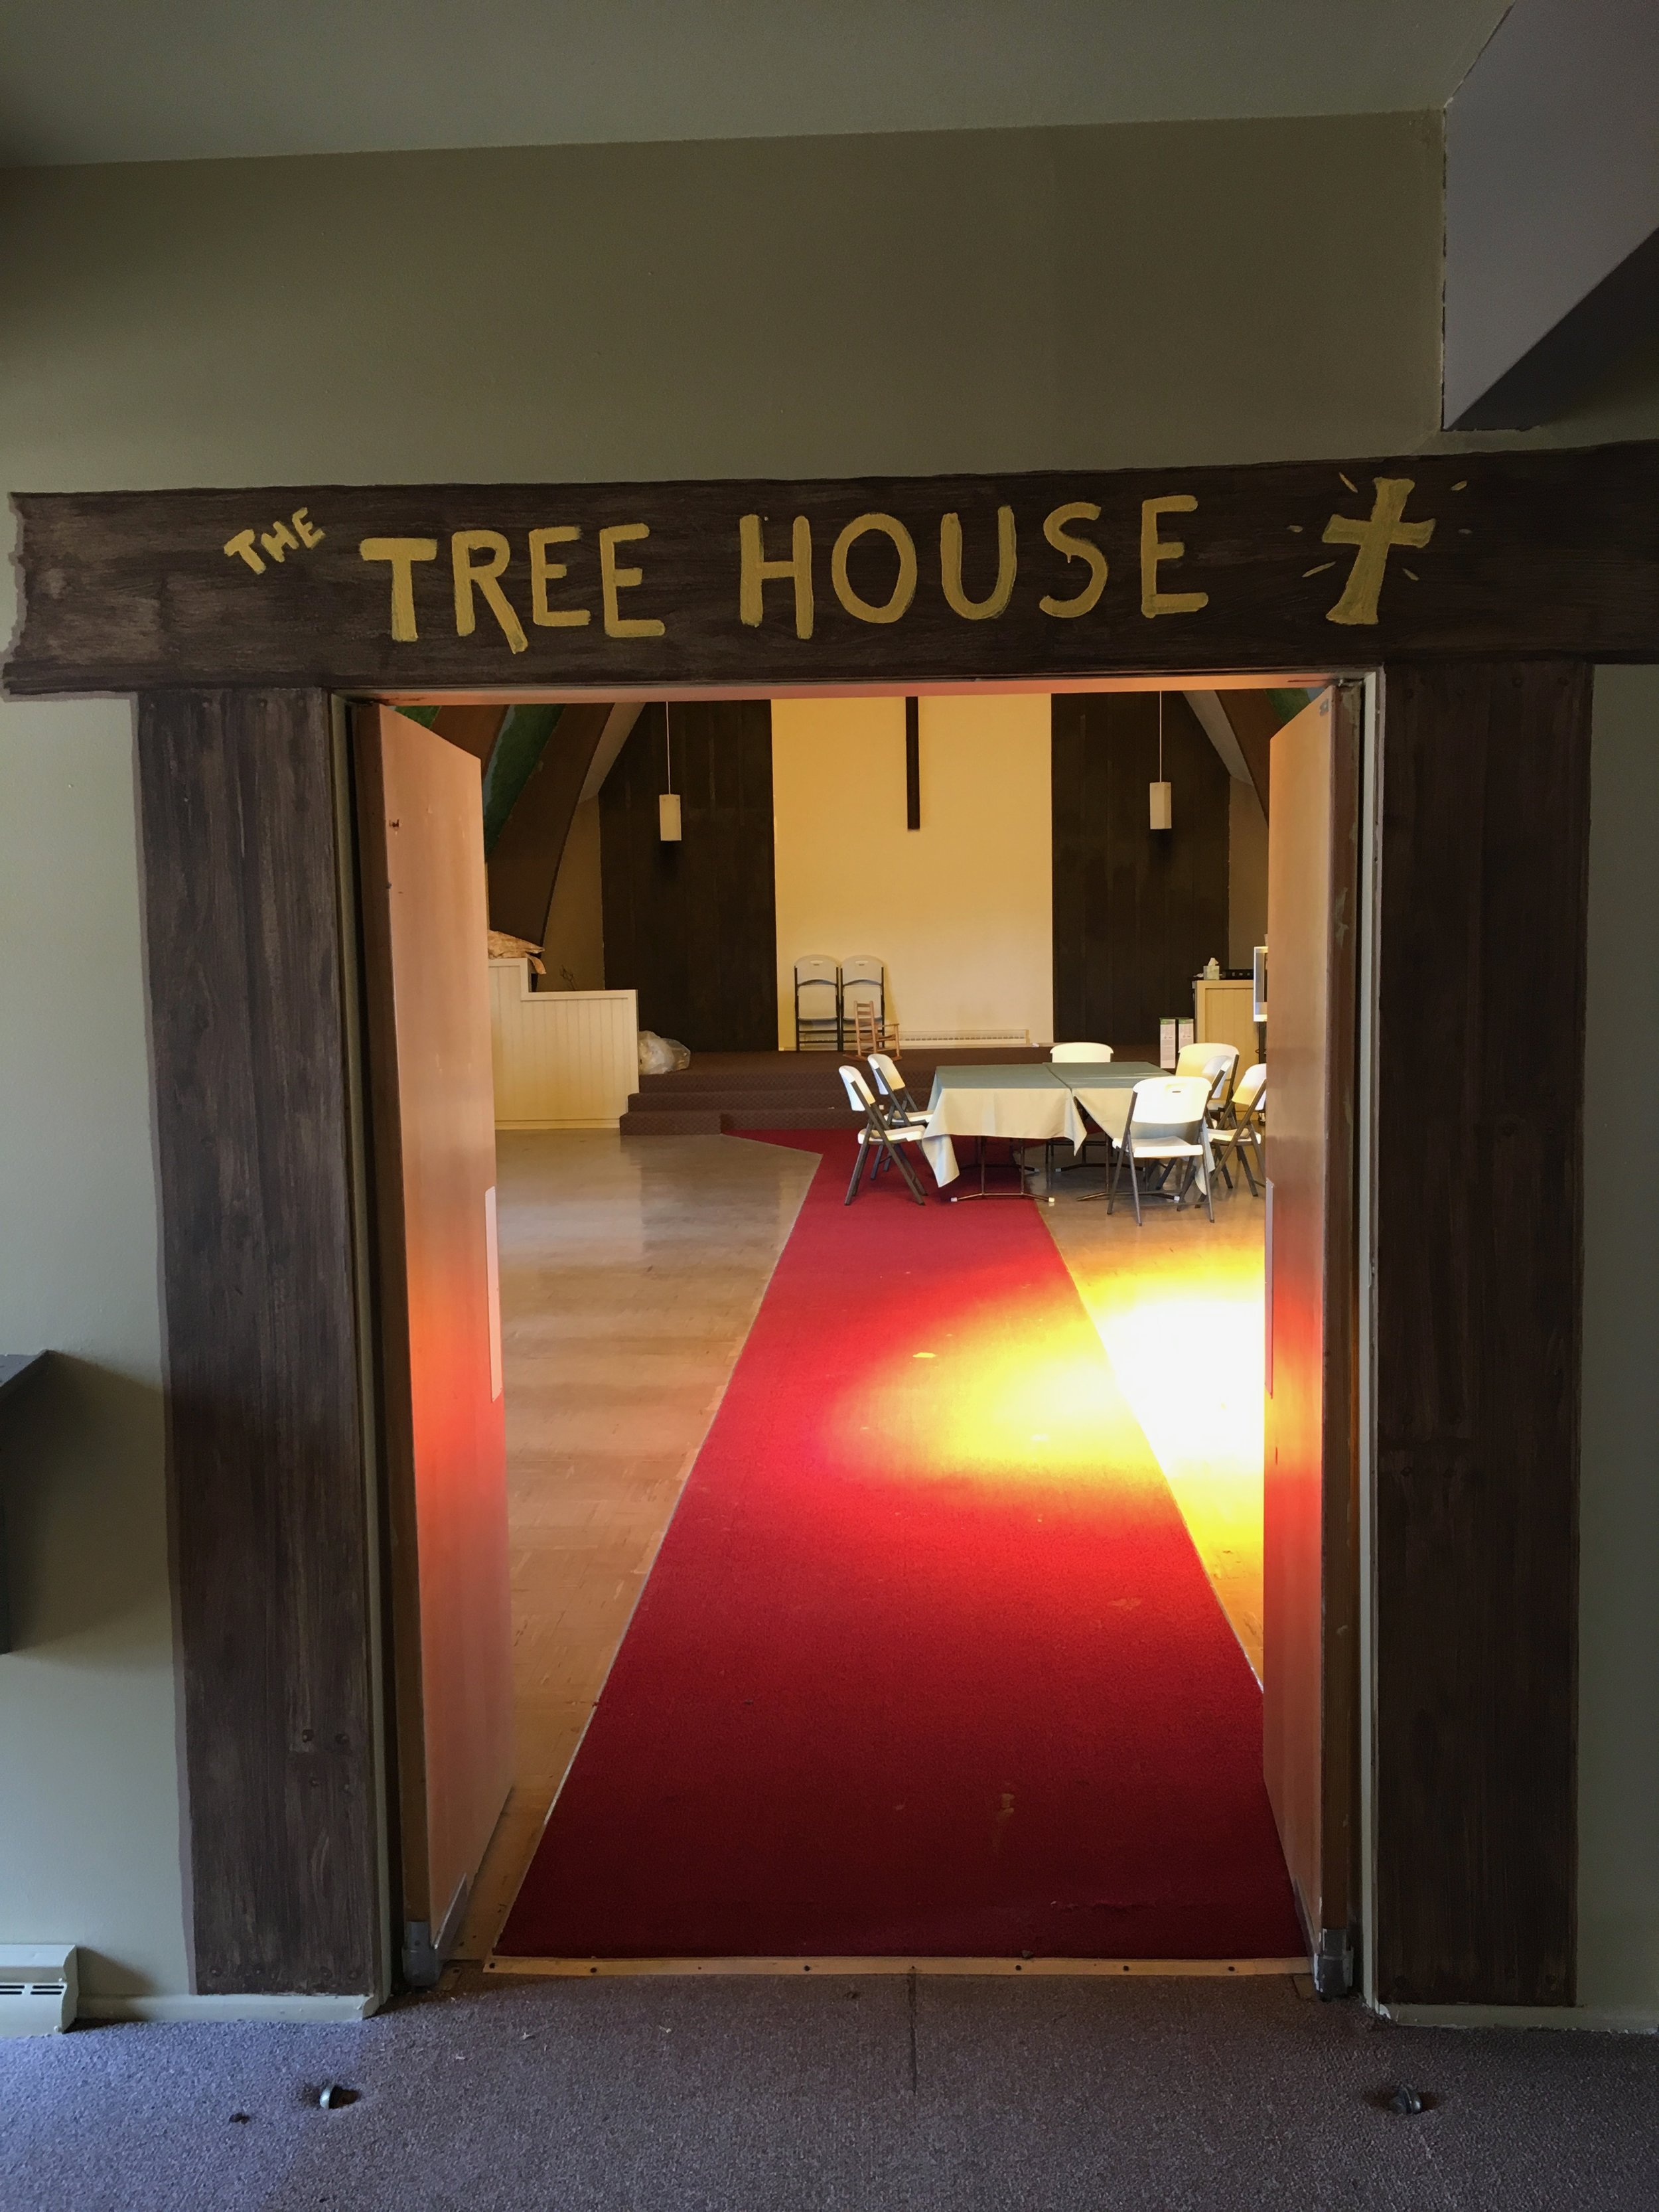 The Tree House. Children's church and other kid's activities are held in this great room.